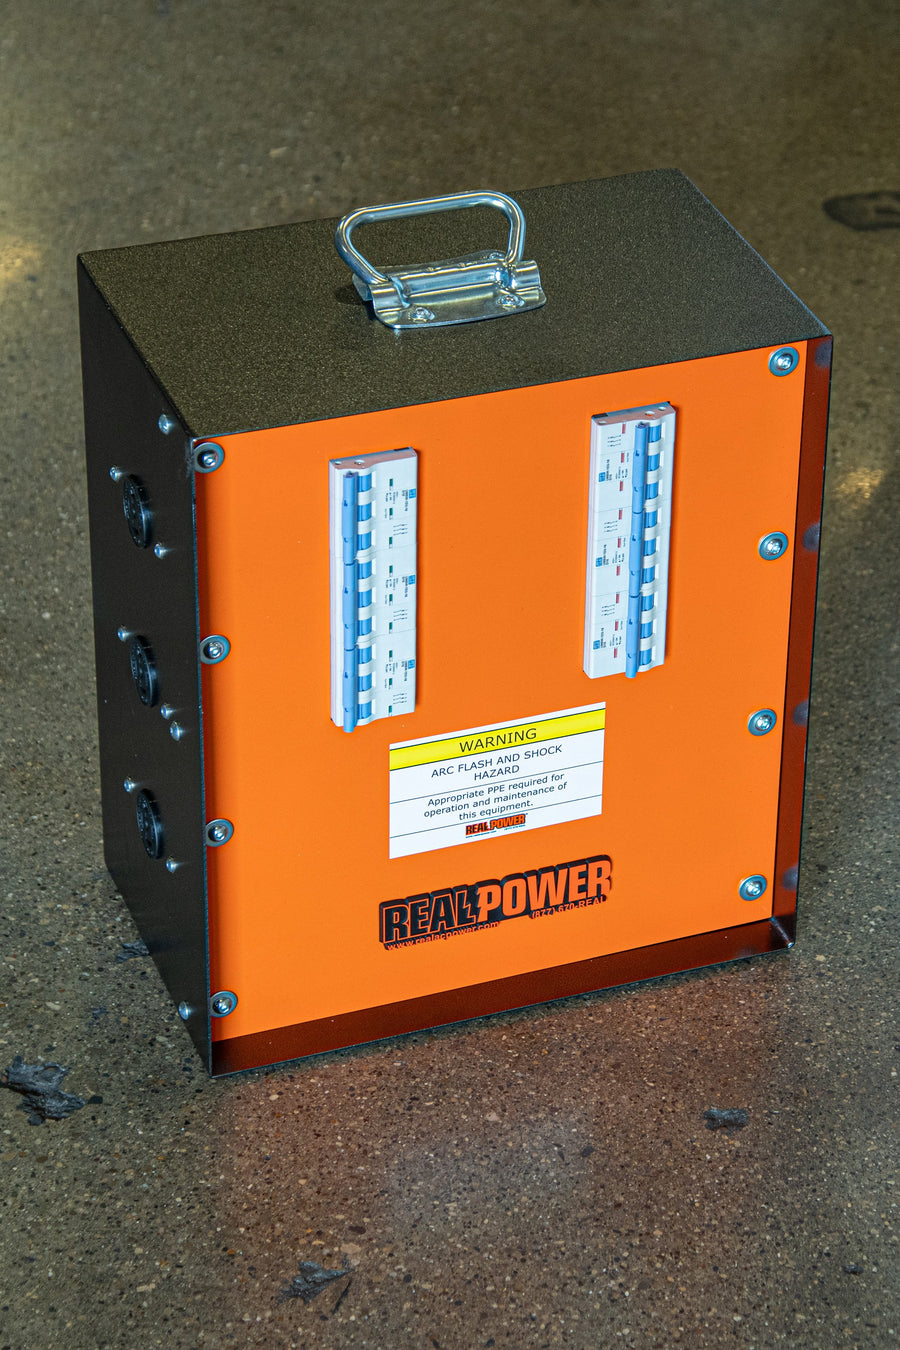 Real Power energy supply unit for external heating pest control.